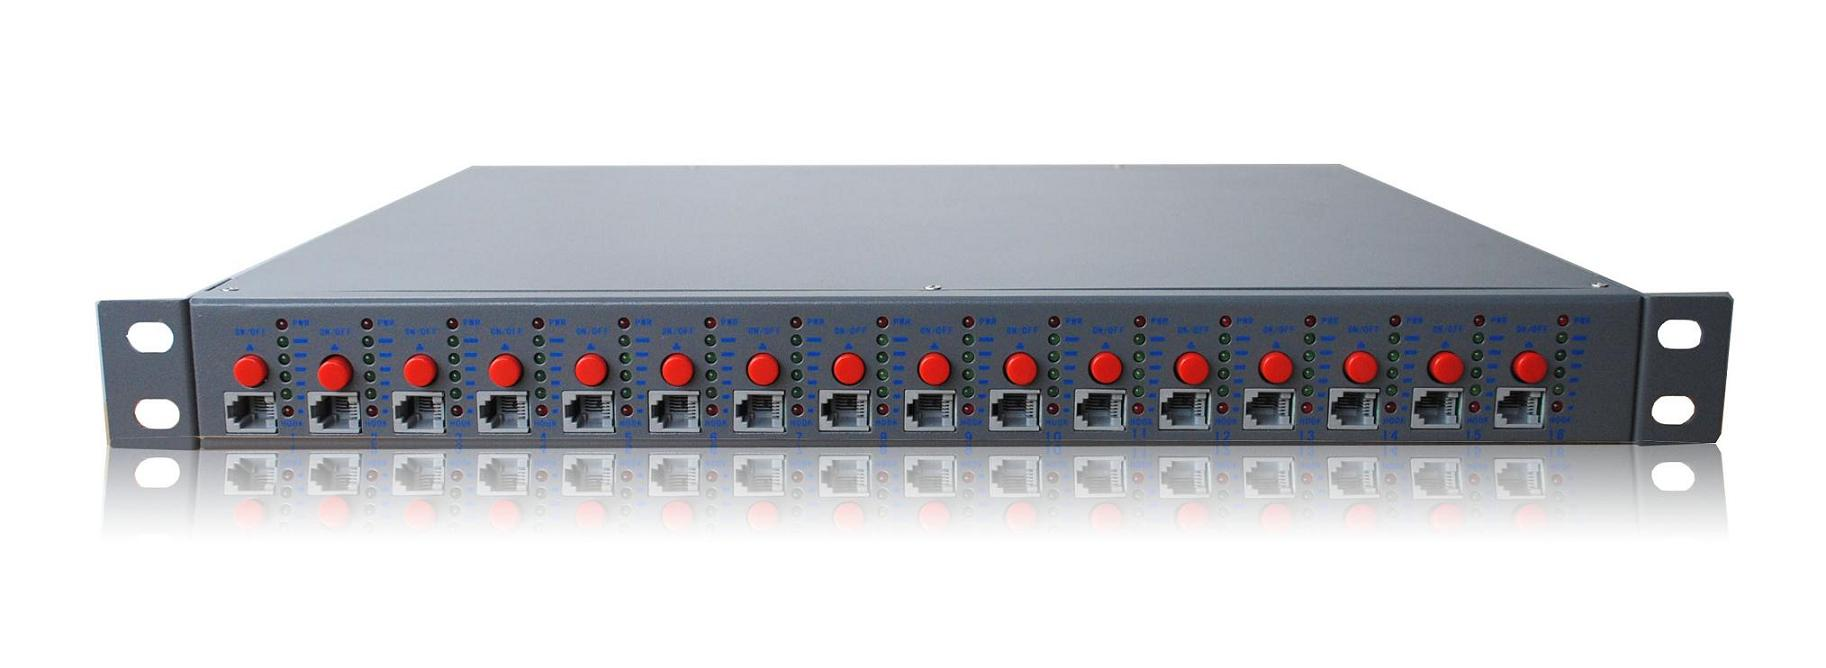 16 Ports GSM FWT Gateway for PABX